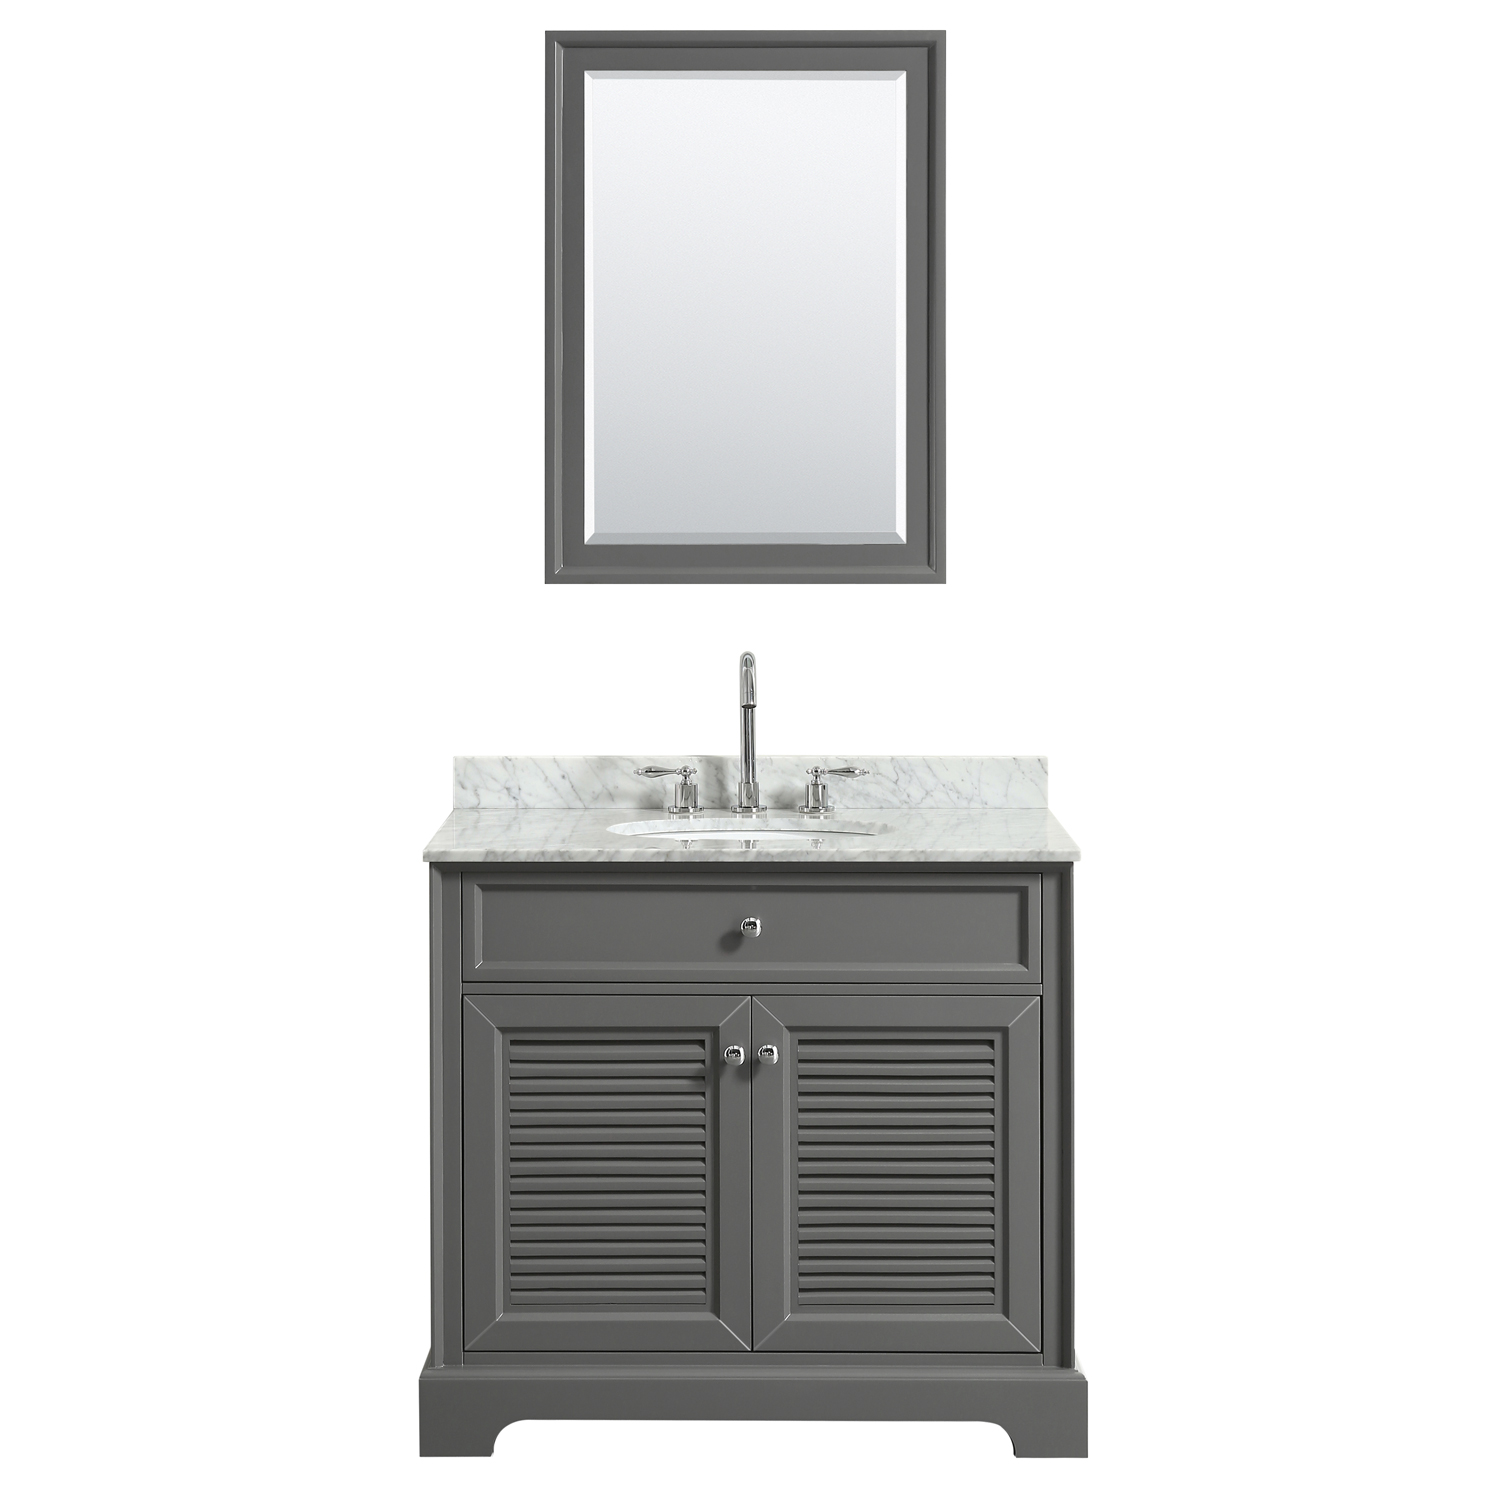 "36"" Single Bathroom Vanity in White Carrara Marble Countertop with Undermount Sink, Medicine Cabinet, Mirror and Color Options"